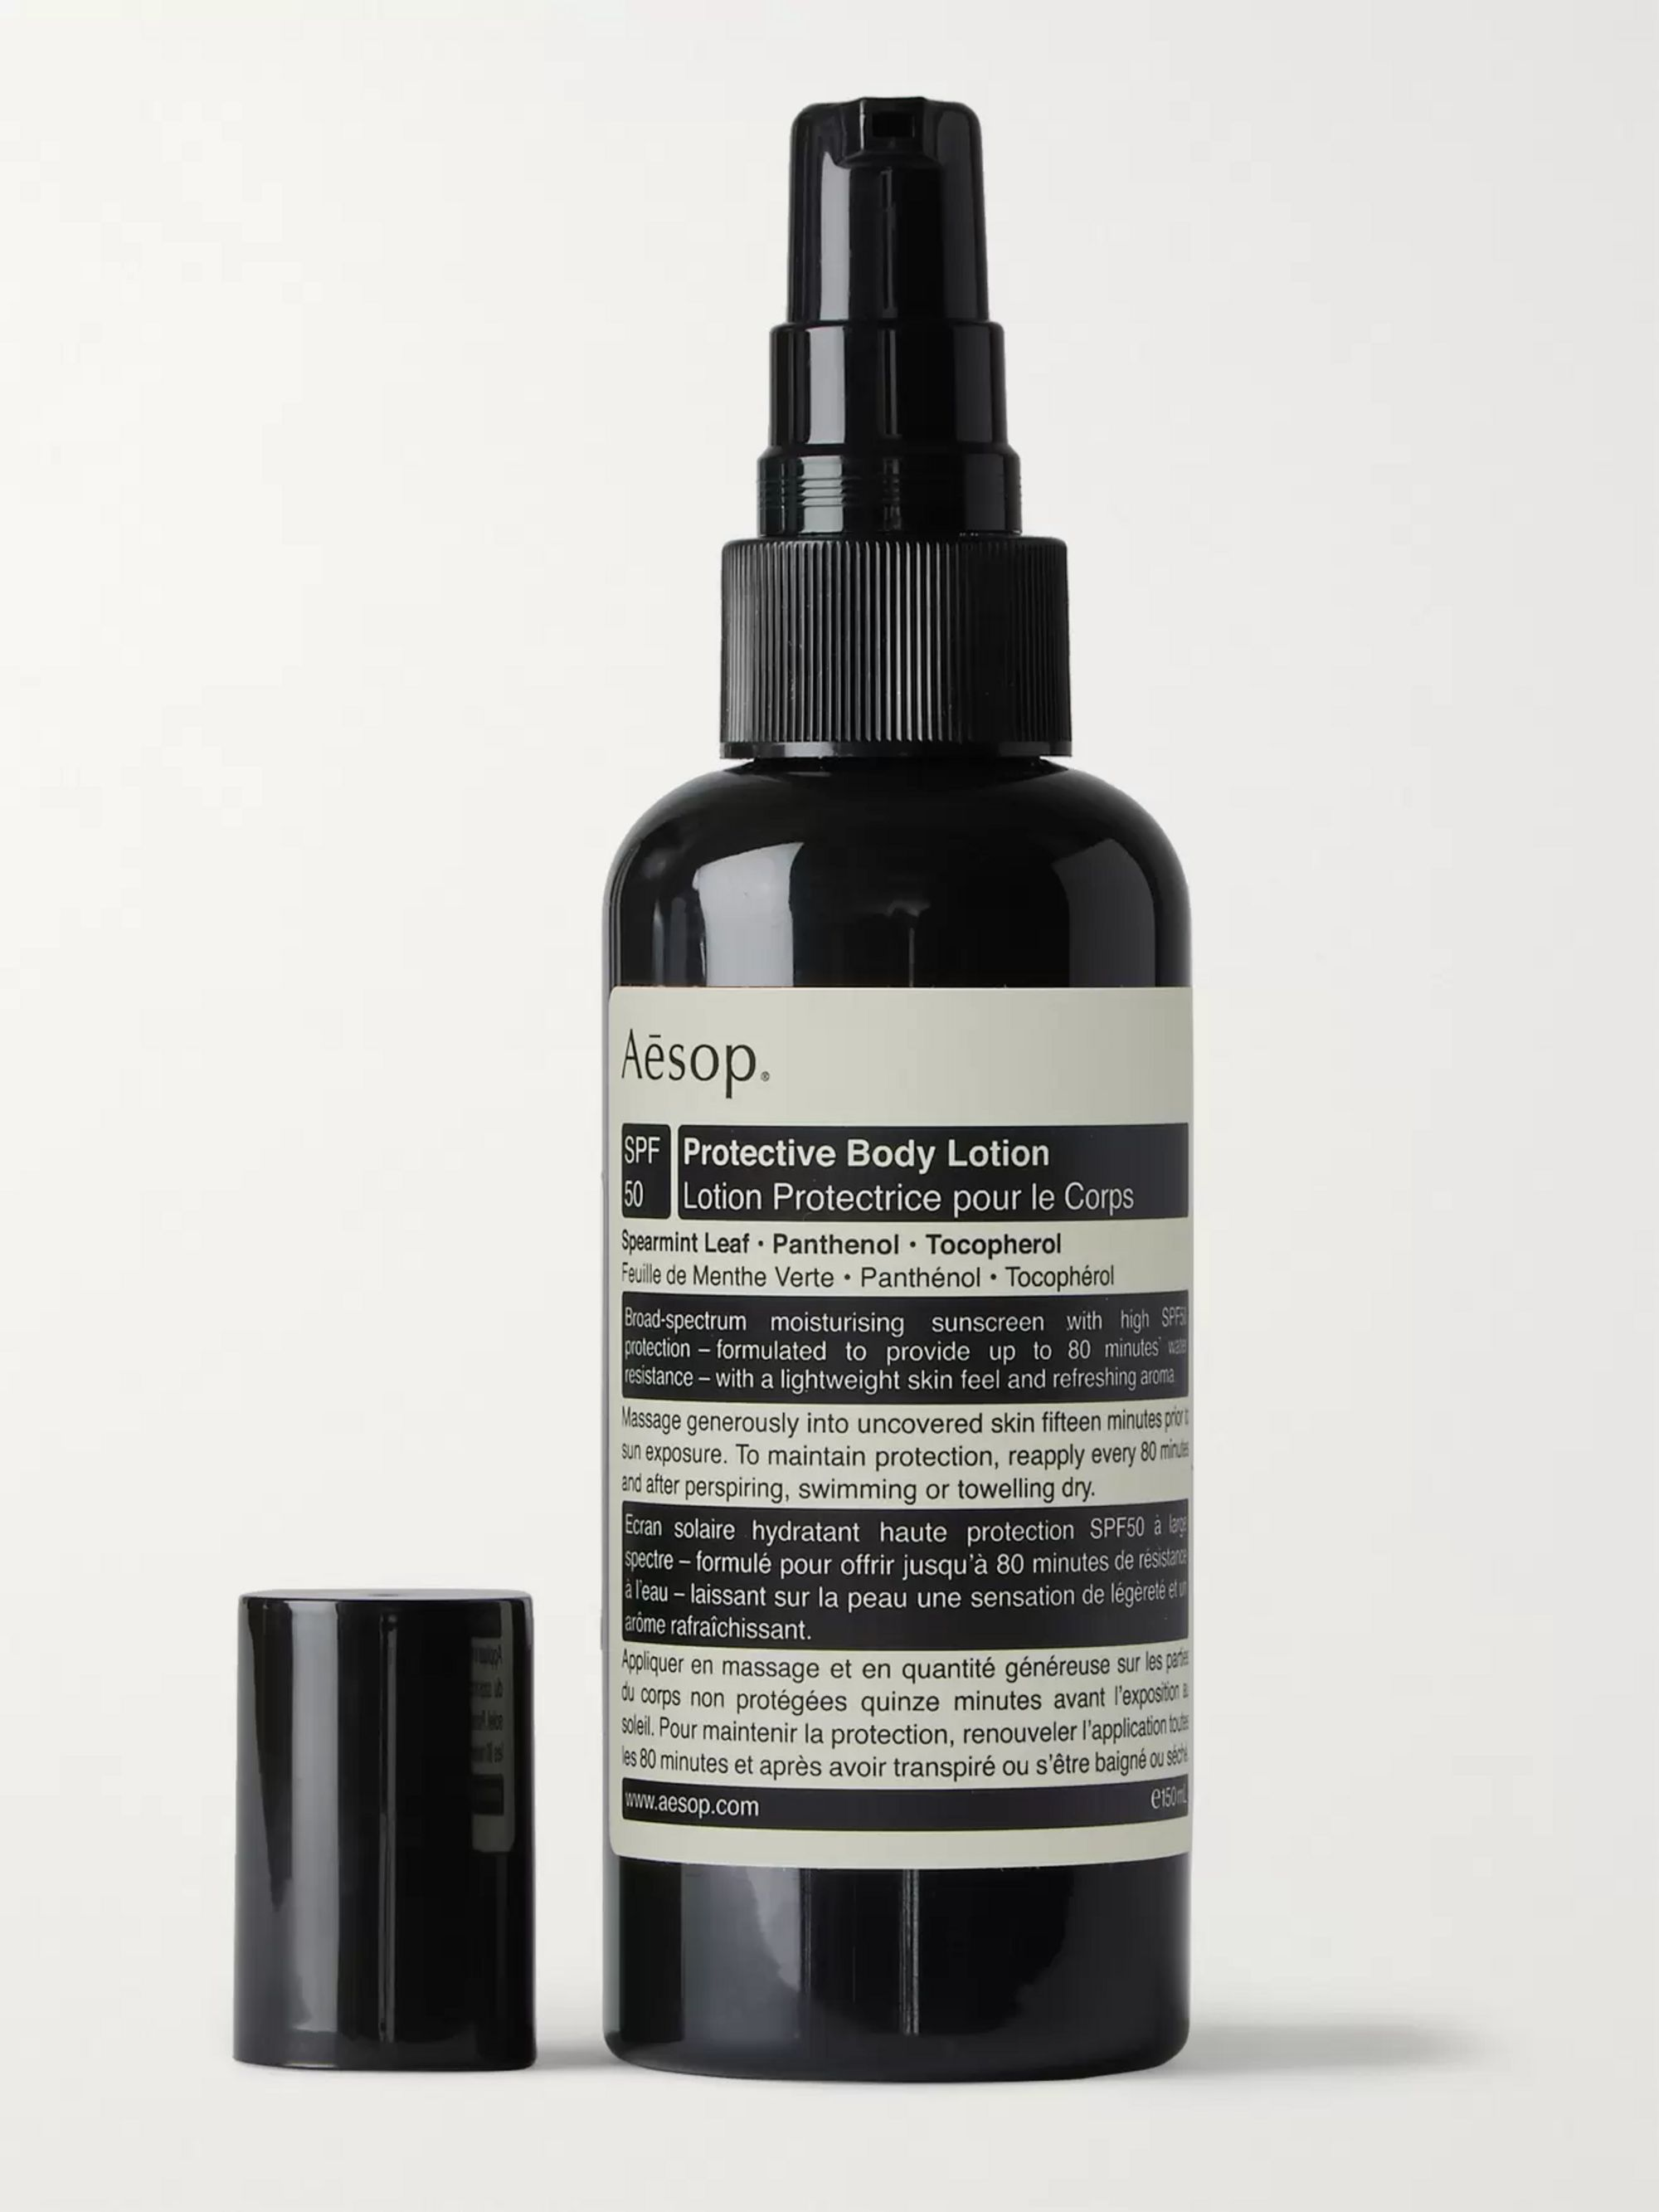 AESOP Avail Body Lotion SPF50, 150ml